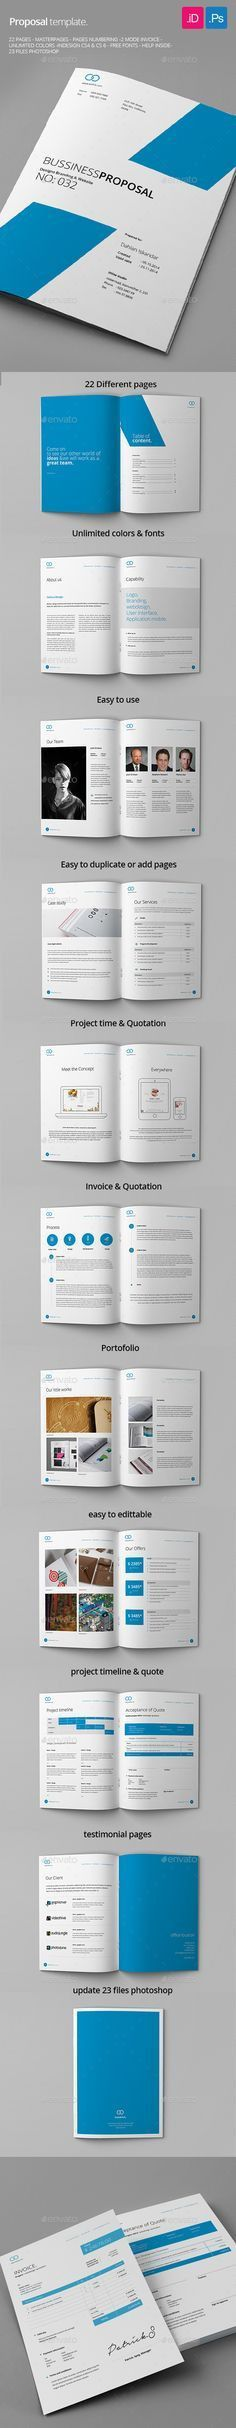 Modern Business Proposal | Business proposal, Proposals and ...